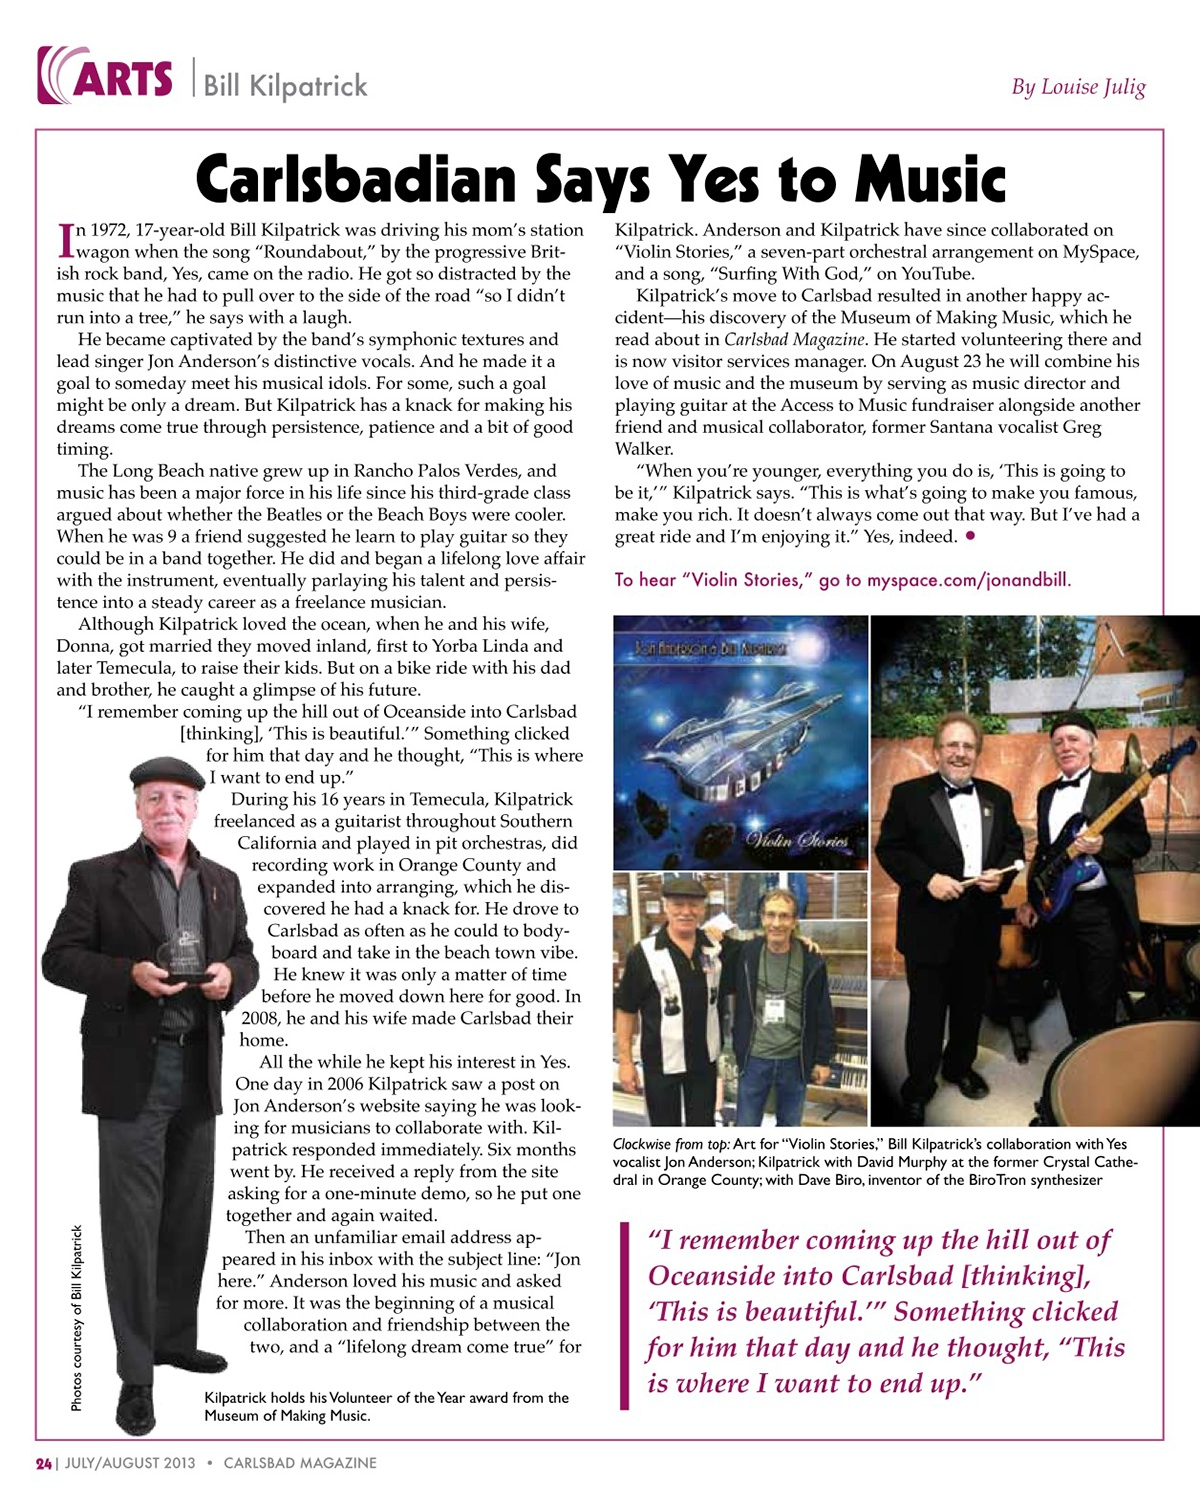 Carlsbad Magazine: Musician Sees Dream Come True